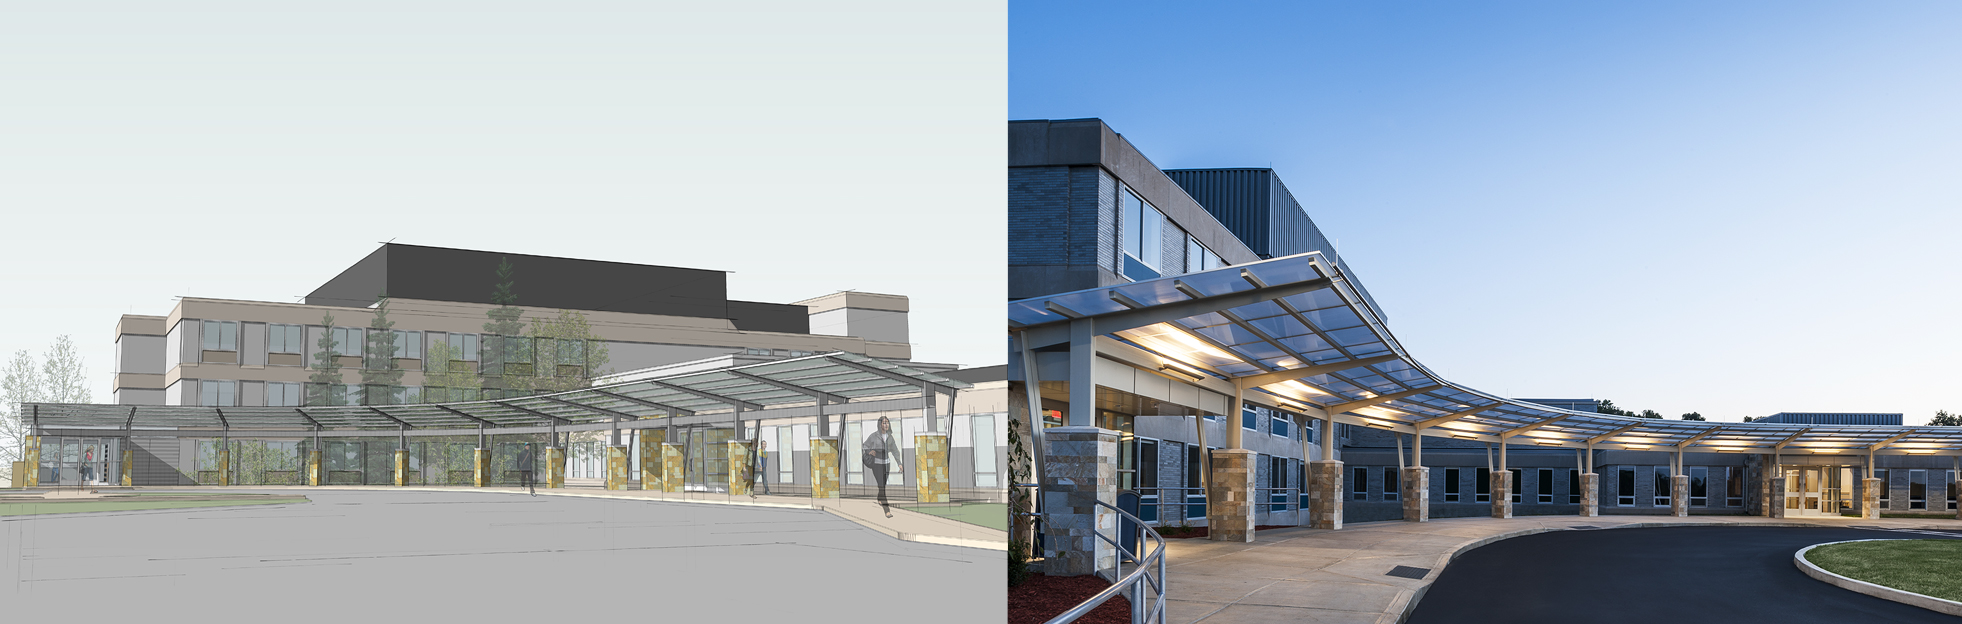 Canopy rendering/building: Orange-Ulster BOCES Regional Education Center at Arden Hill